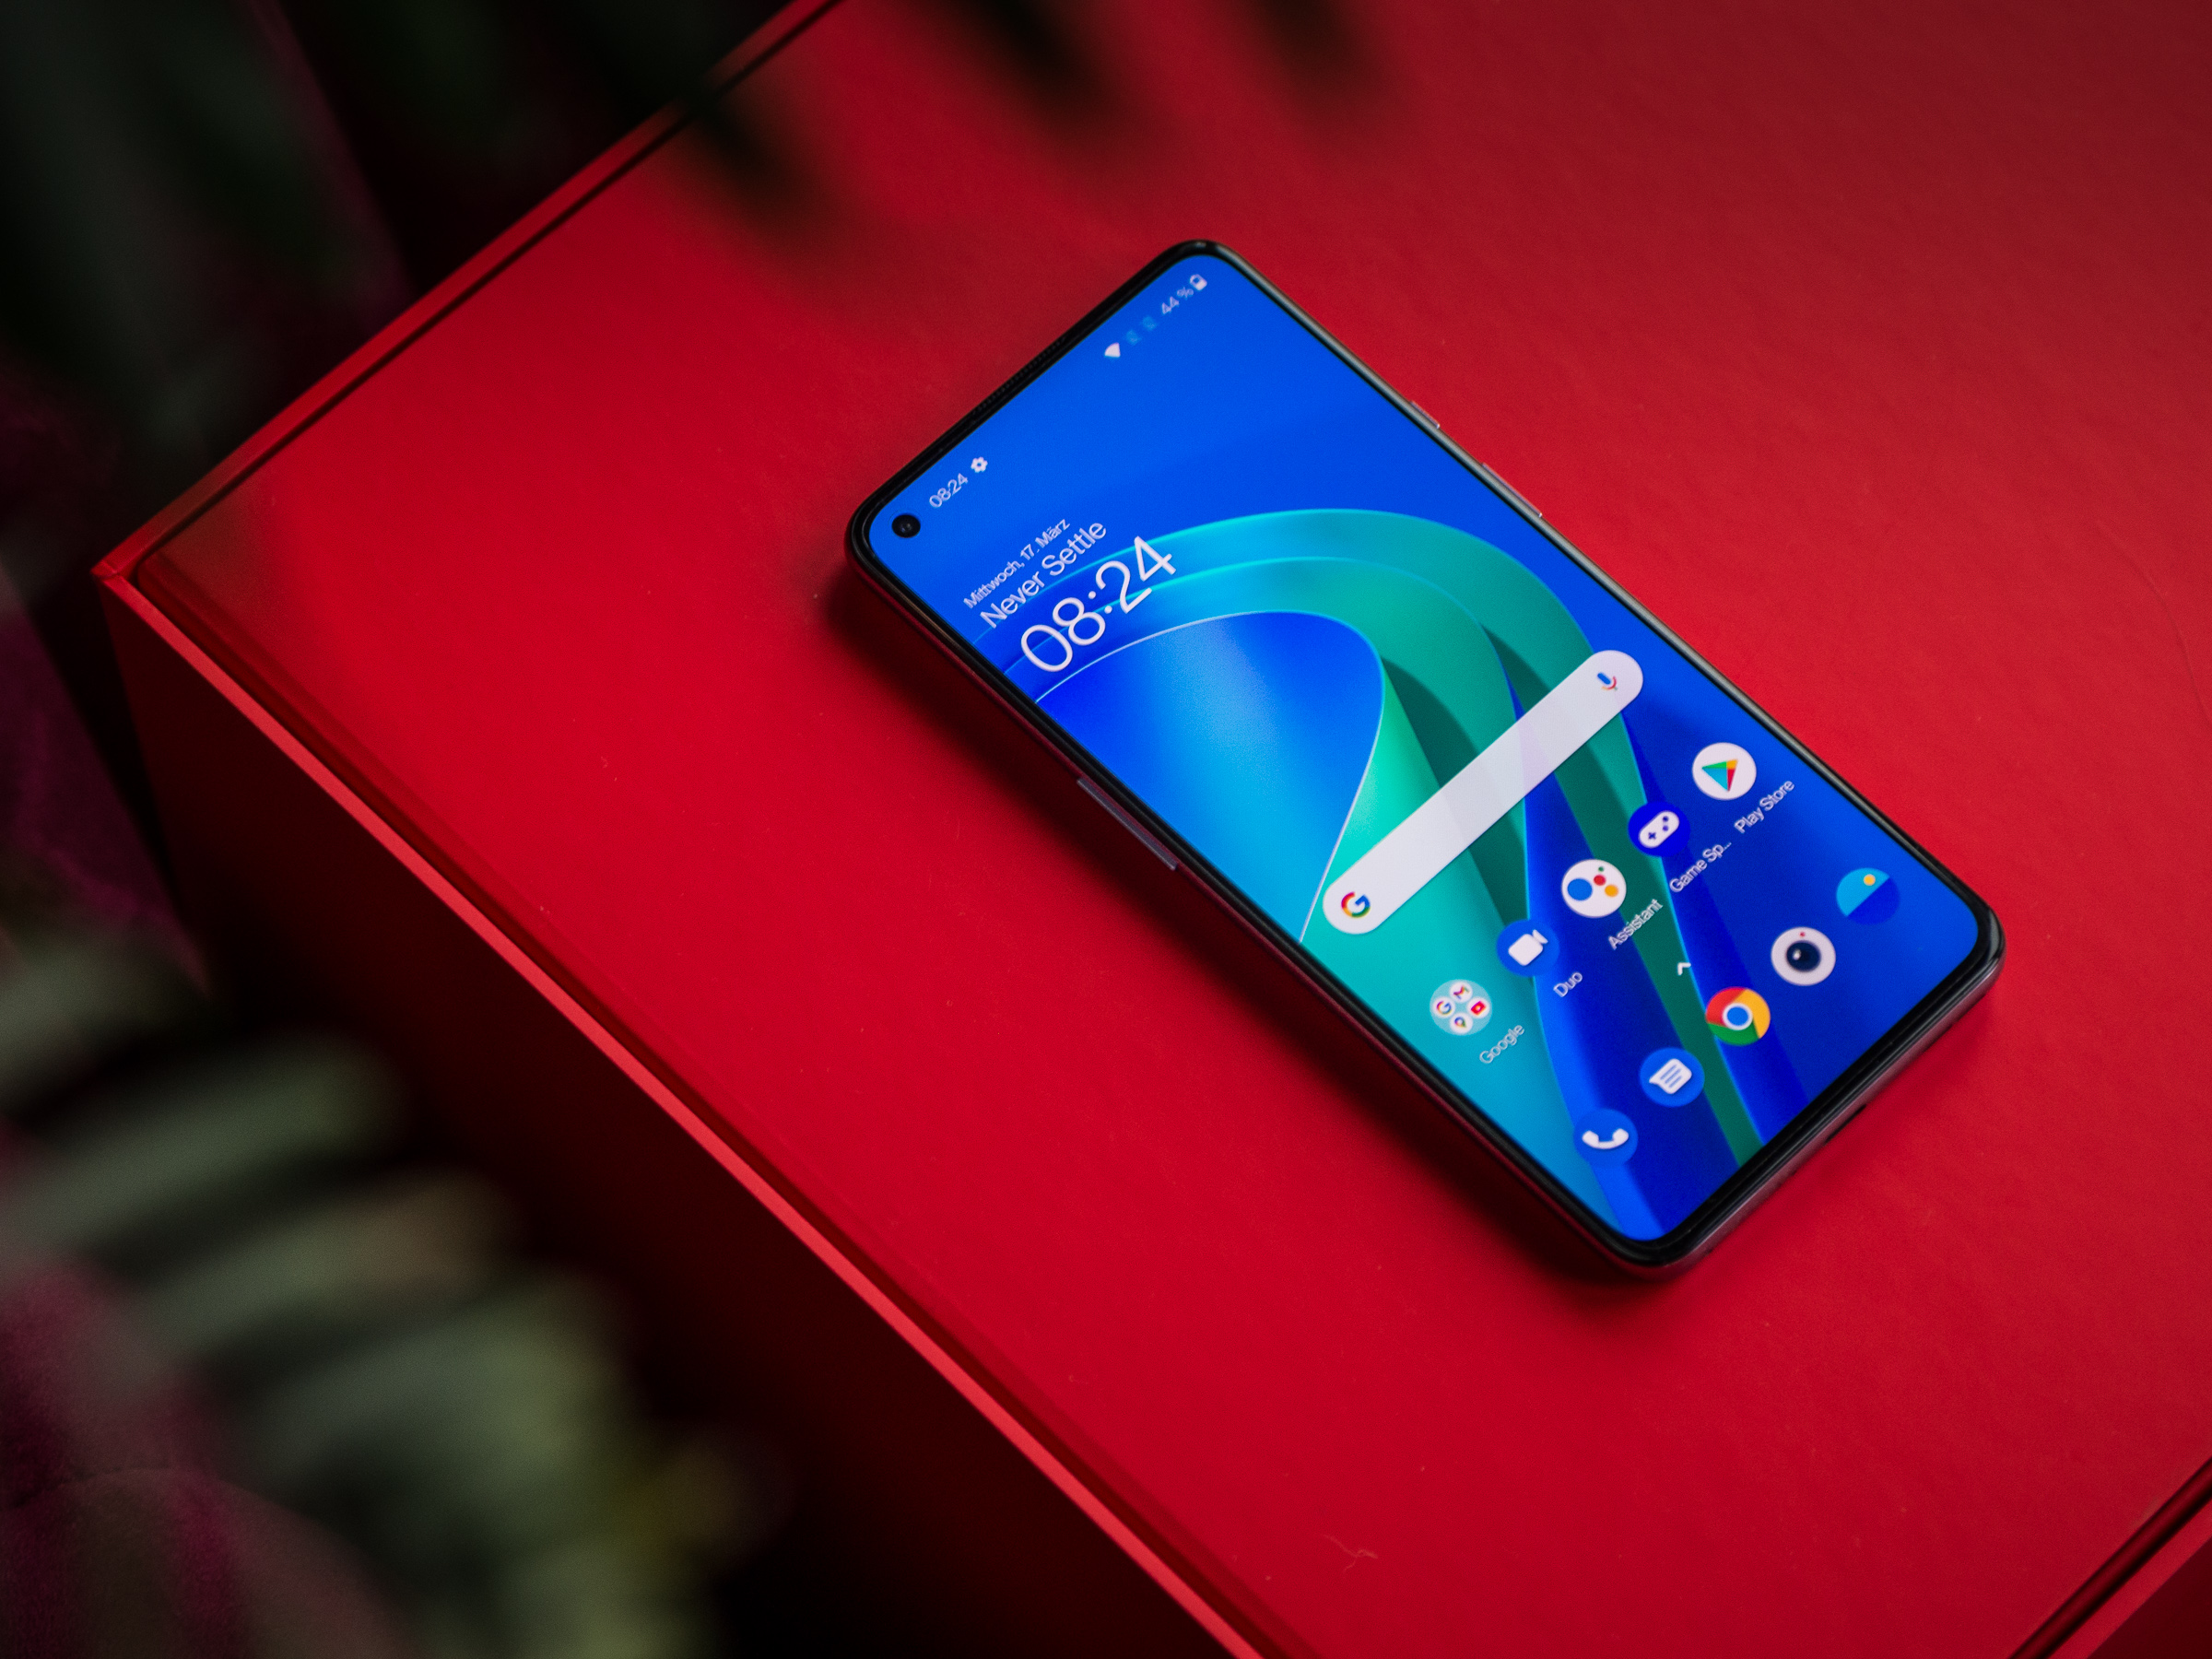 Das Display des OnePlus 9